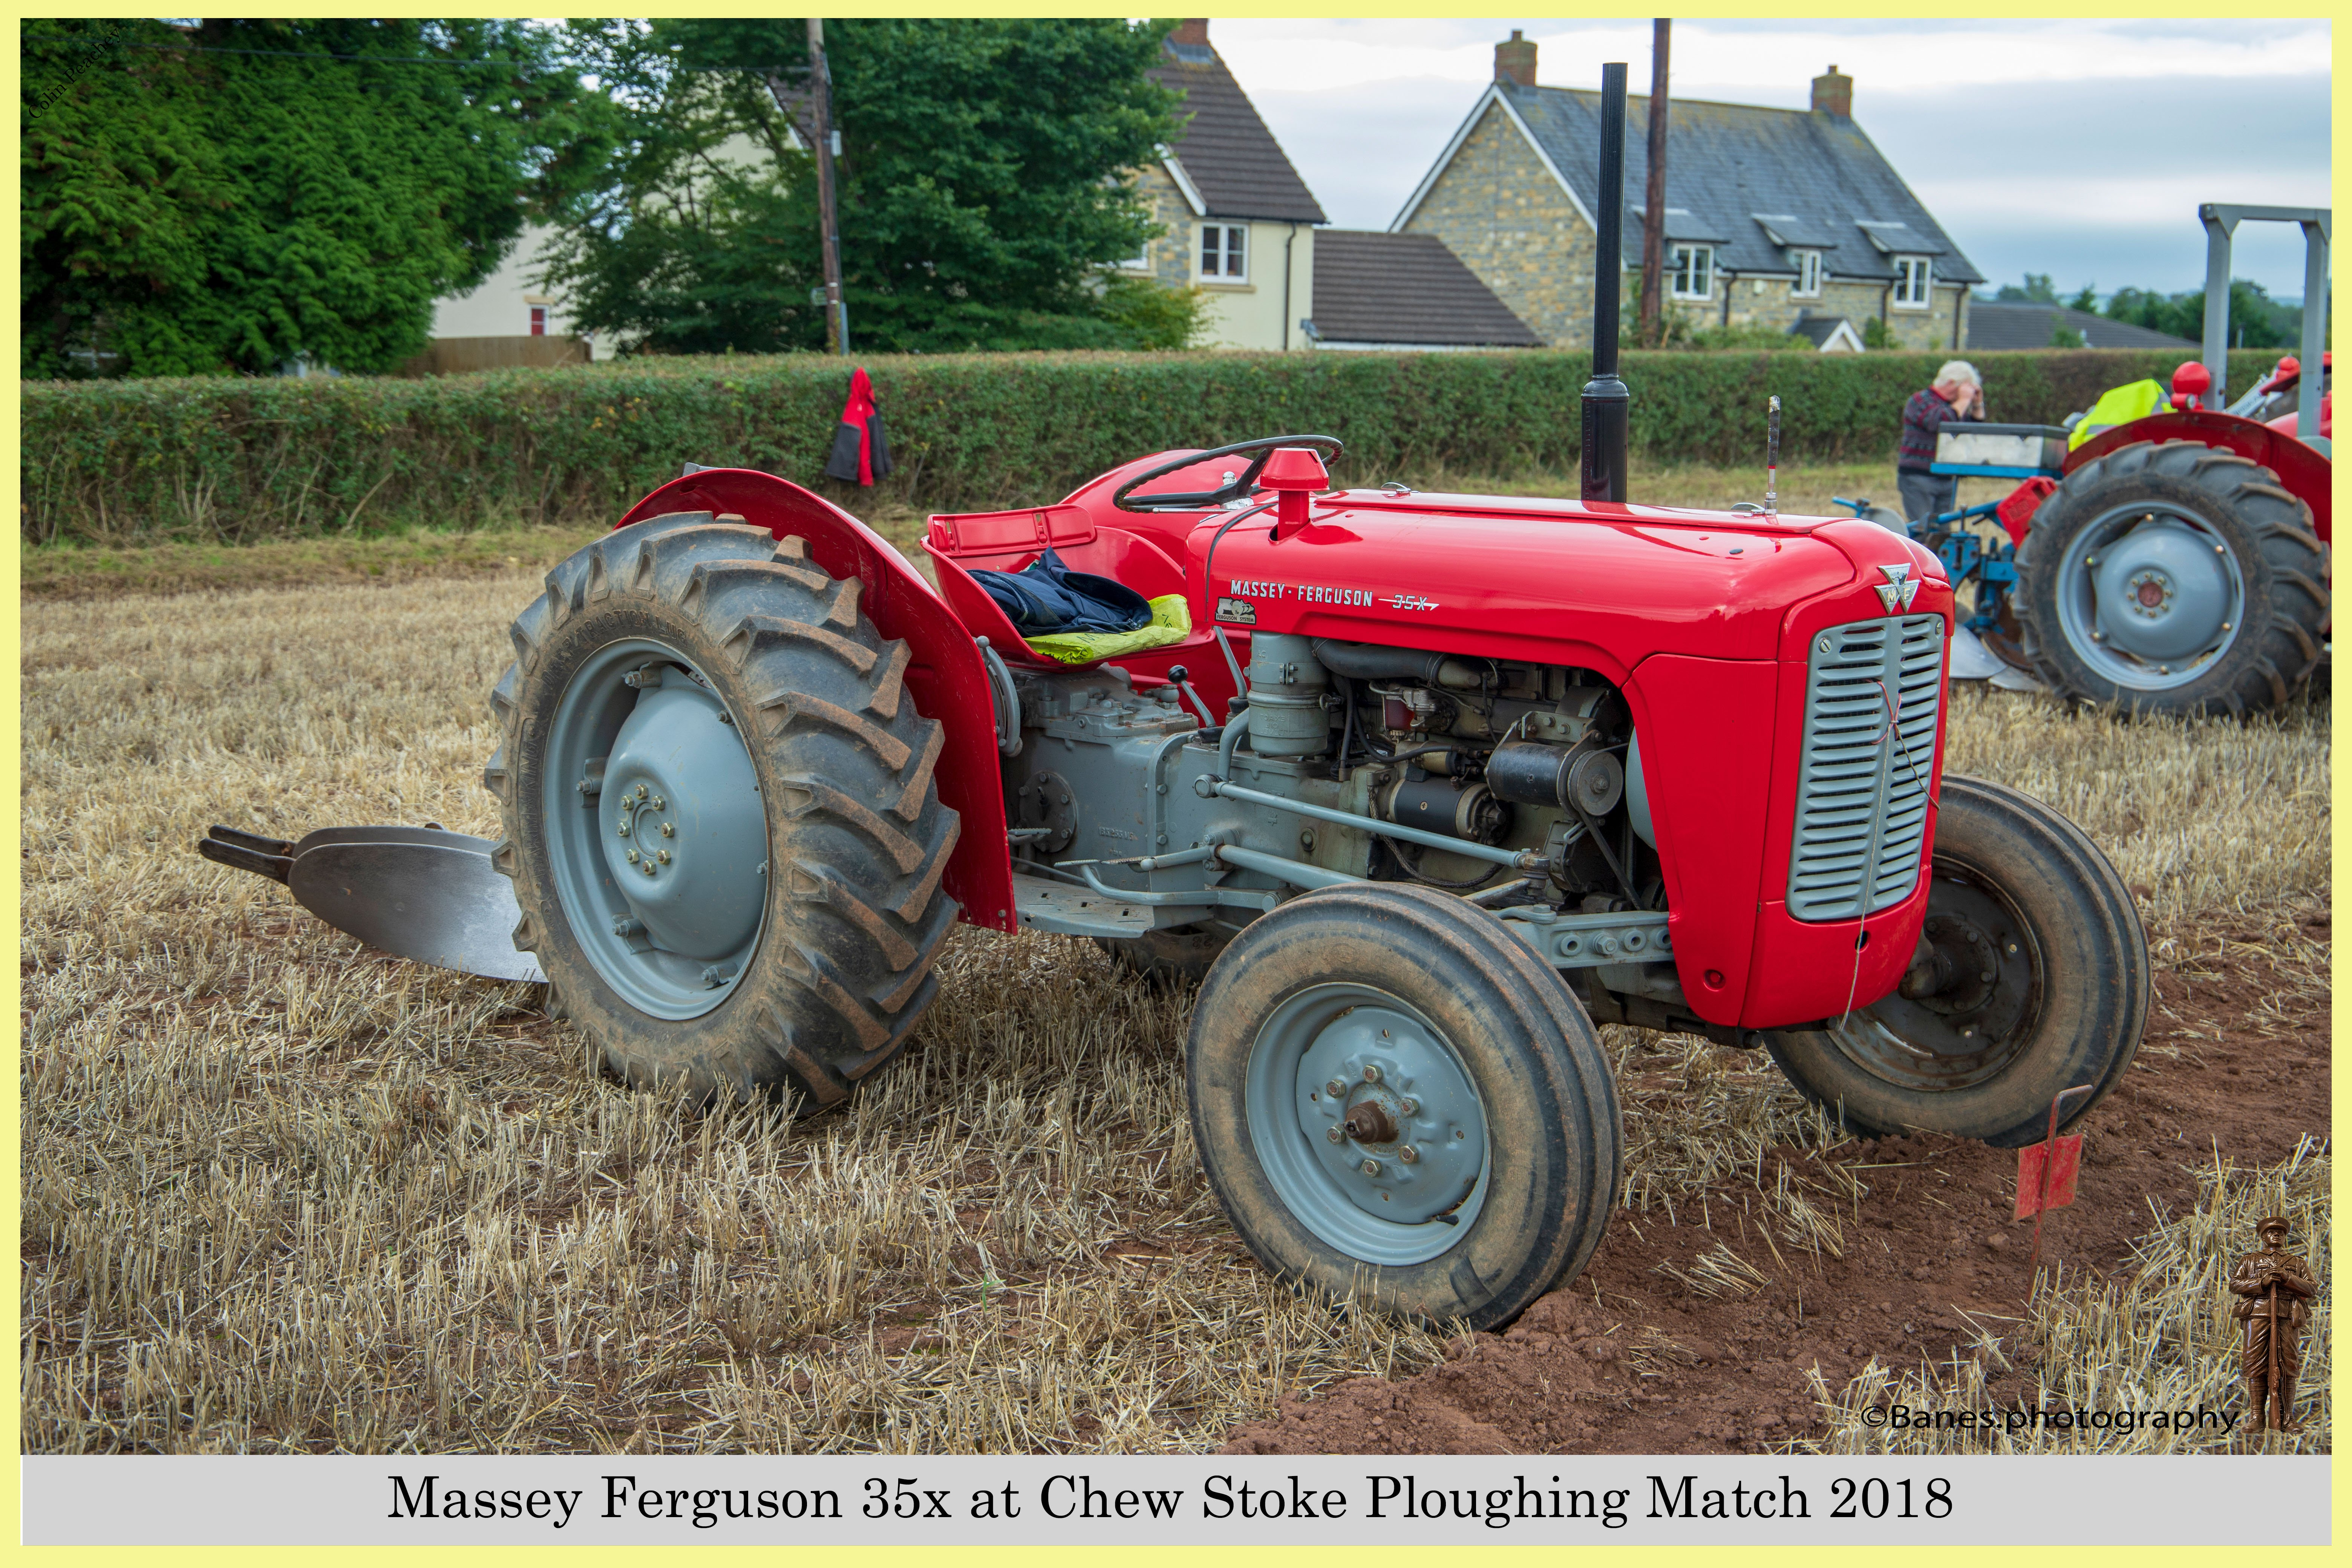 Massey Ferguson 35x, at Chew Stoke 2018